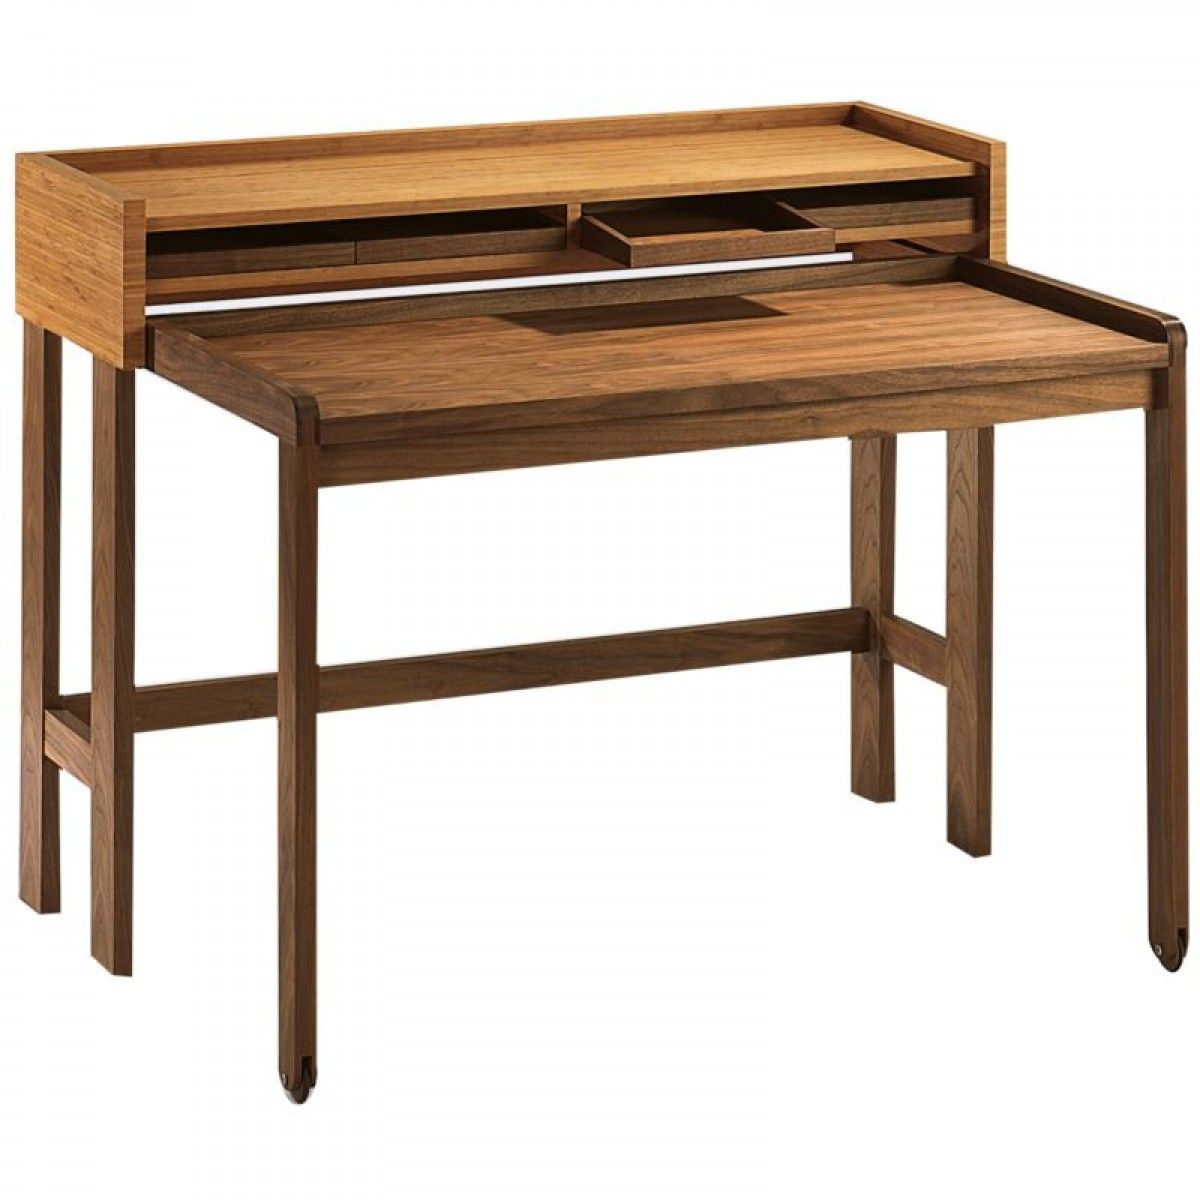 Sekretär Braun Lambert Modesto Sekretär Braun Landlord Furniture Home Decor